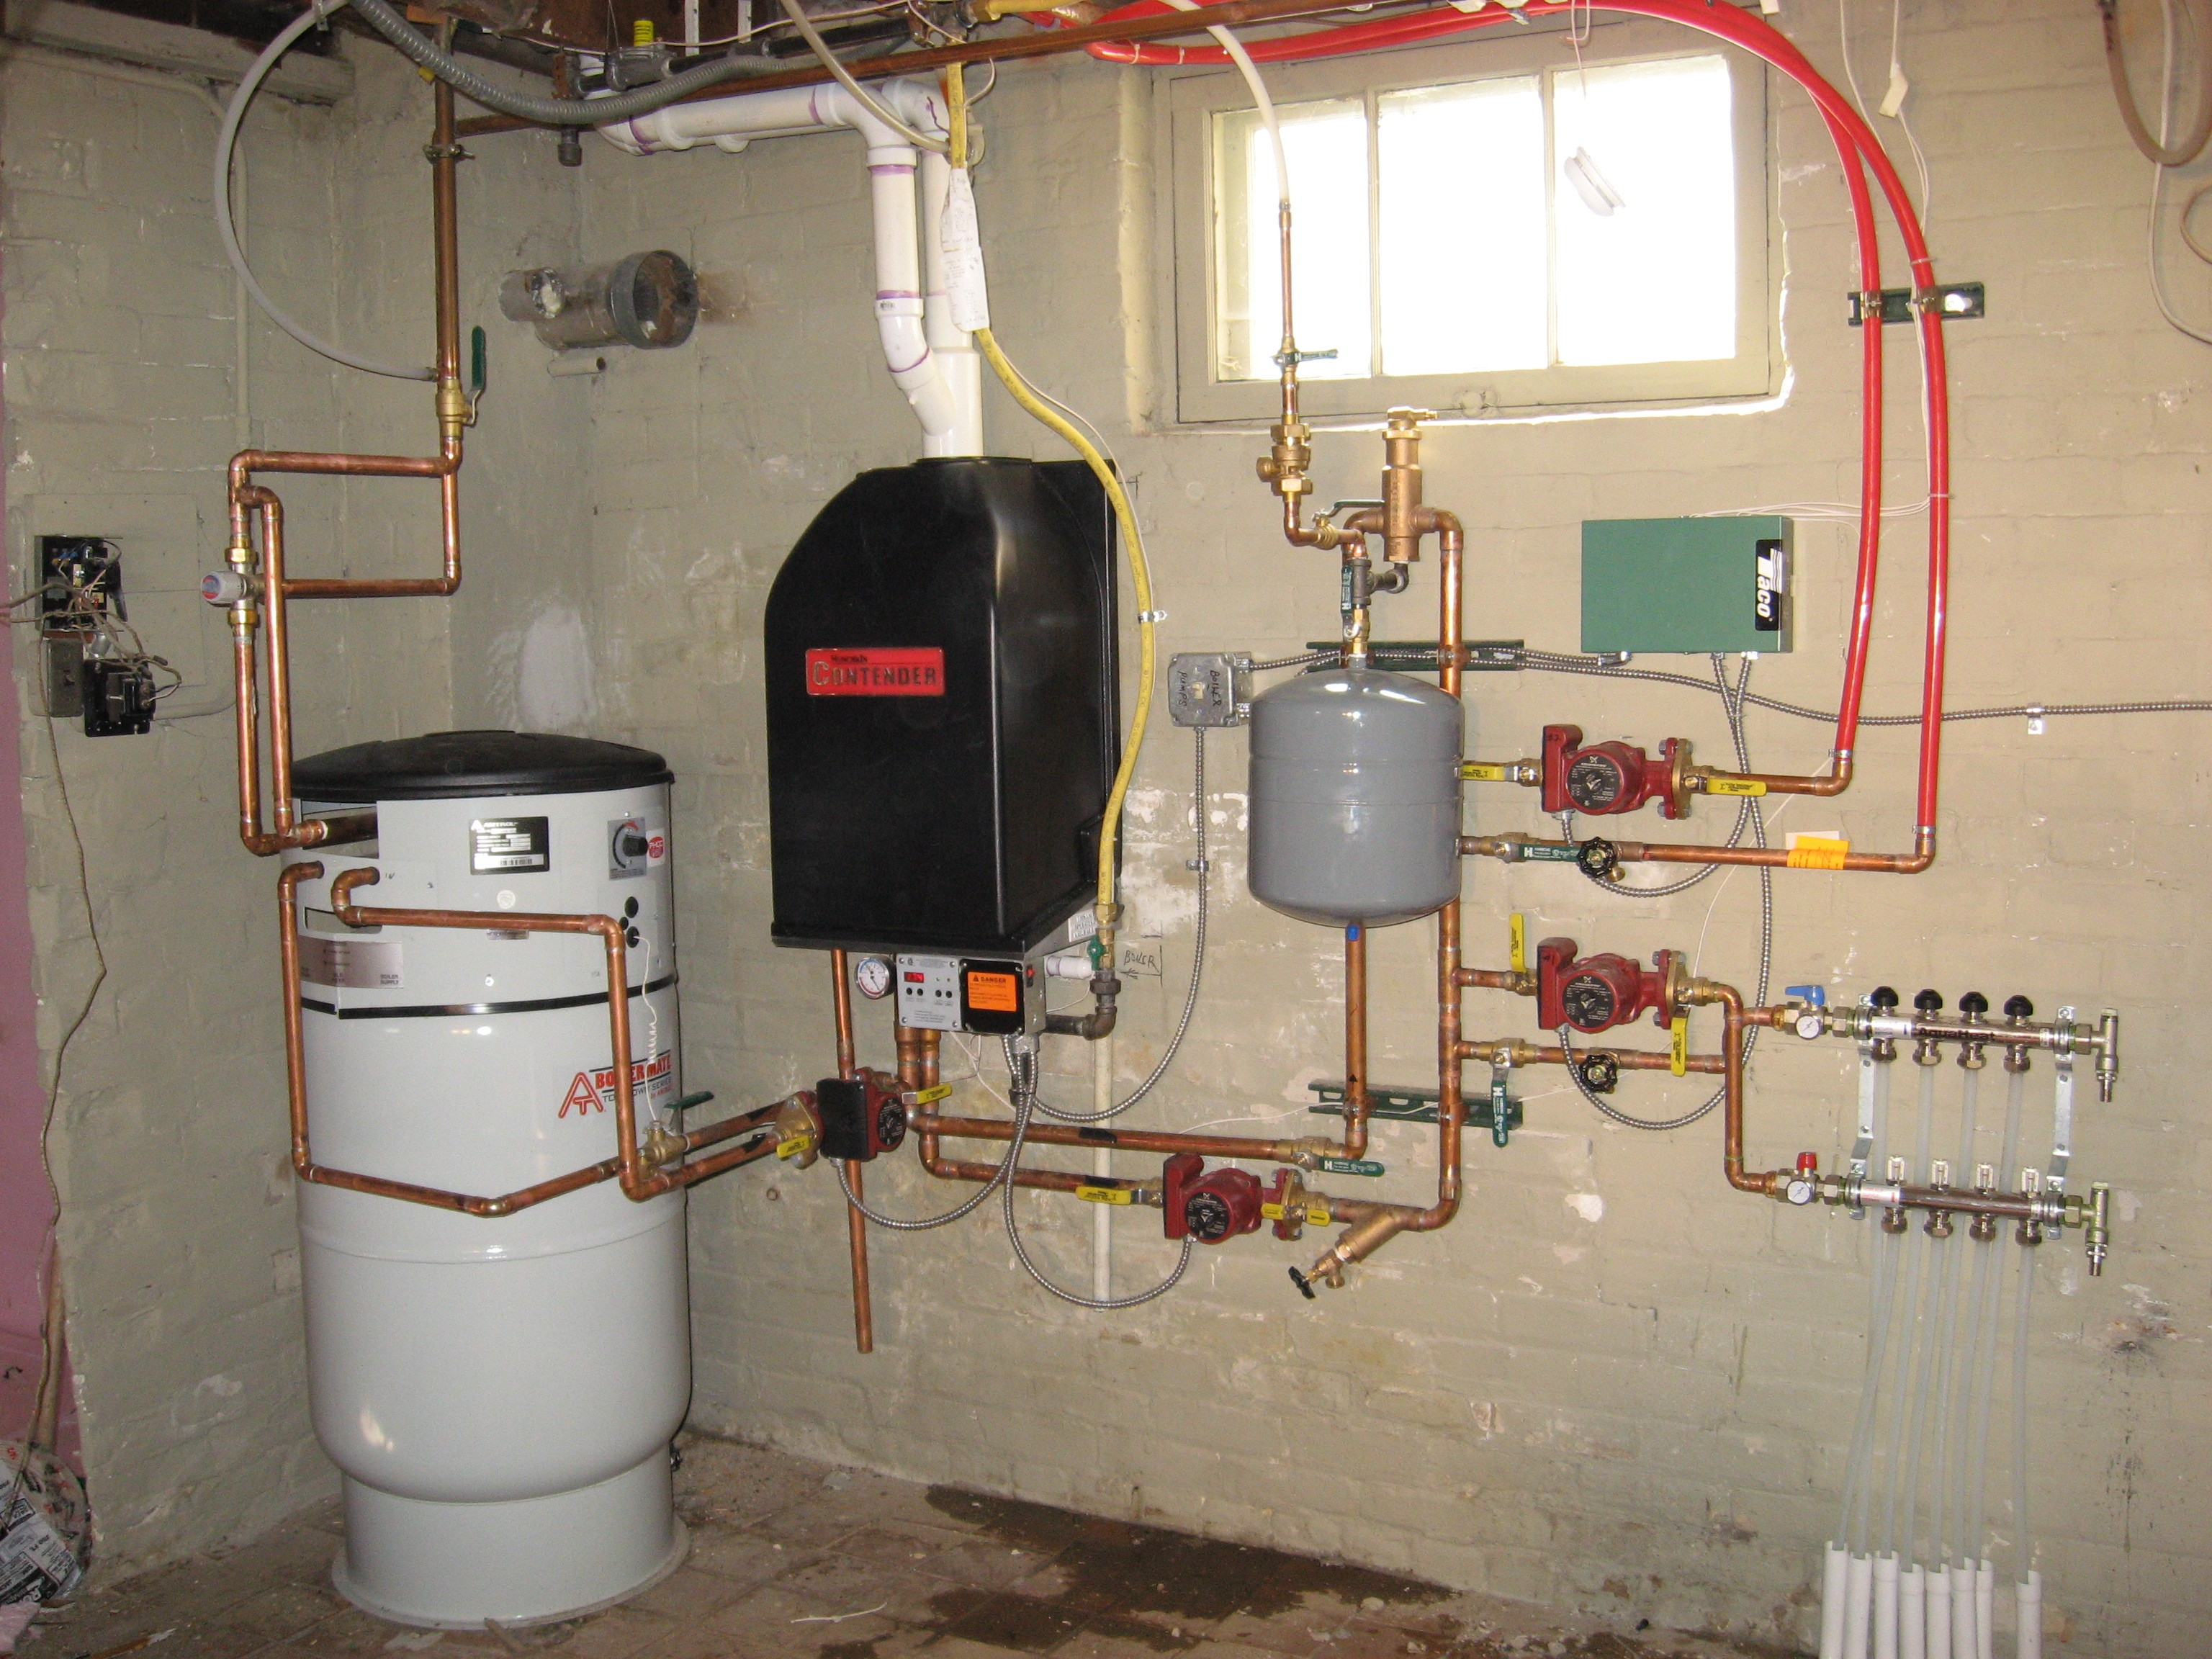 Jacksonville Water Heater Installation & Repair Services-We do Water Heater Installation and Repair, Natural Gas Water Heaters, 24/7 Emergency Water Heater Service and Maintenance, Hybrid Water Heaters, Water Heater Expansion Tank, Commercial Water Heater Services, Tankless Water Heaters Installations, and more